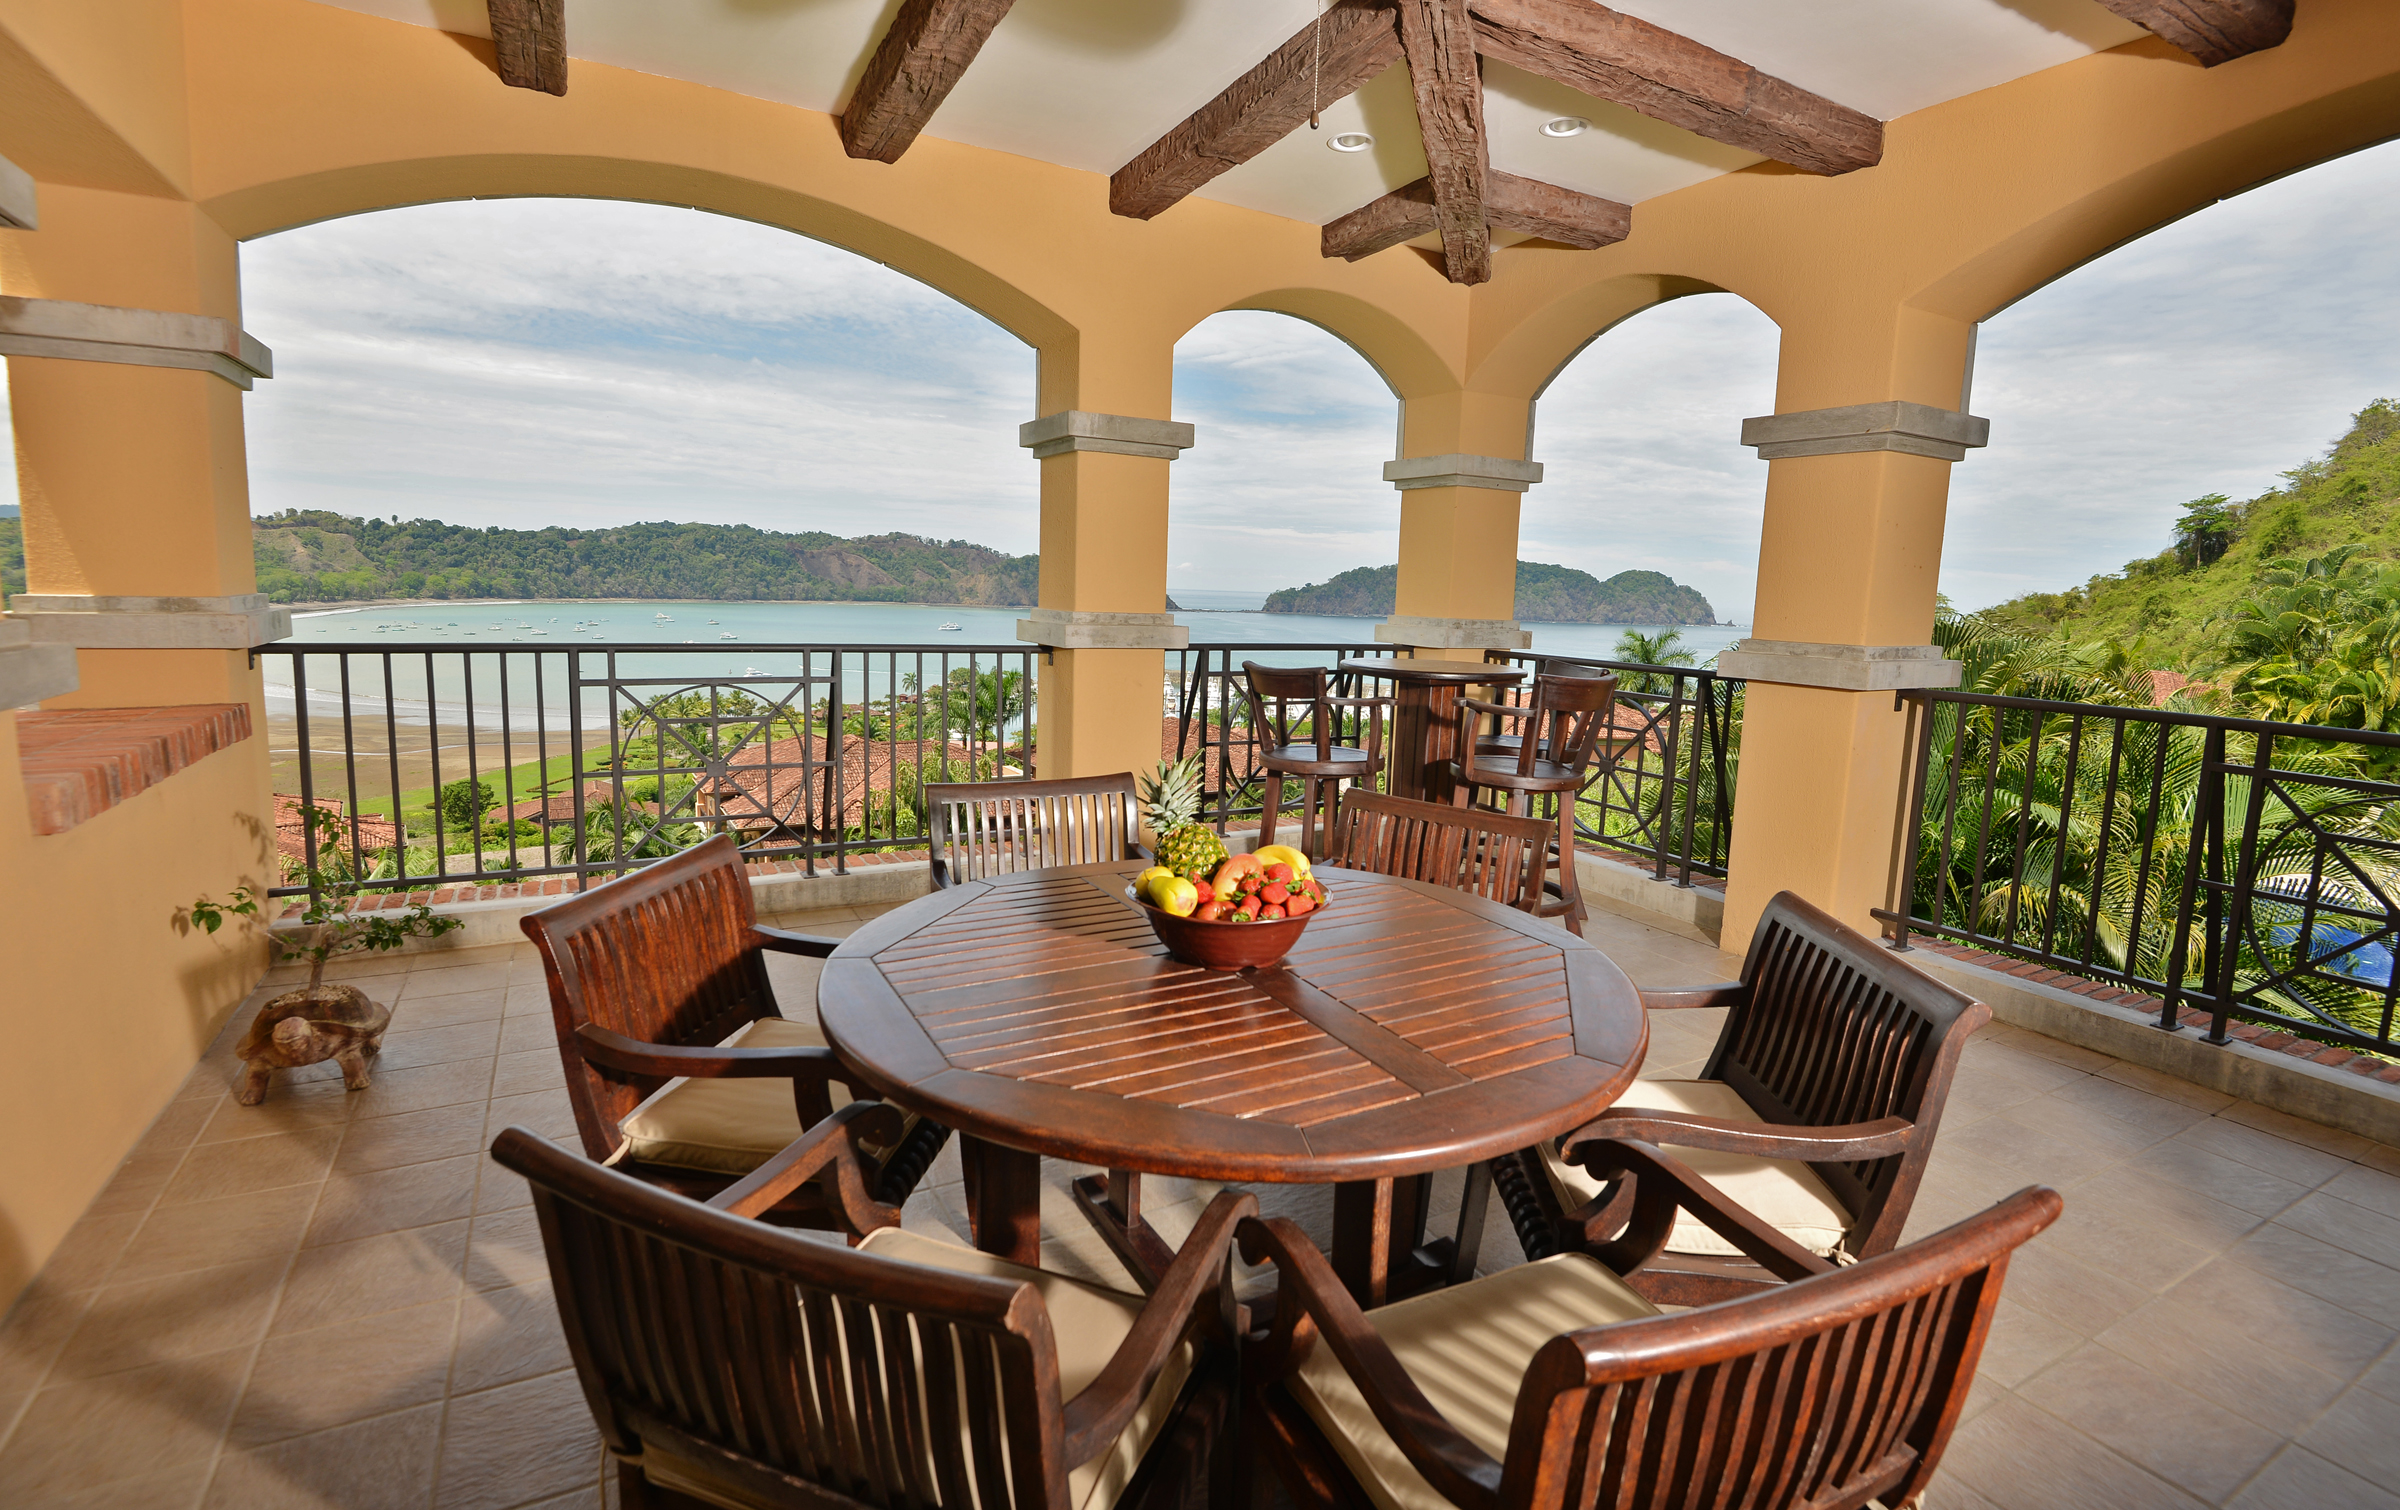 Condo With Stunning Views in Upscale Neighborhood, Los Sueños Resort